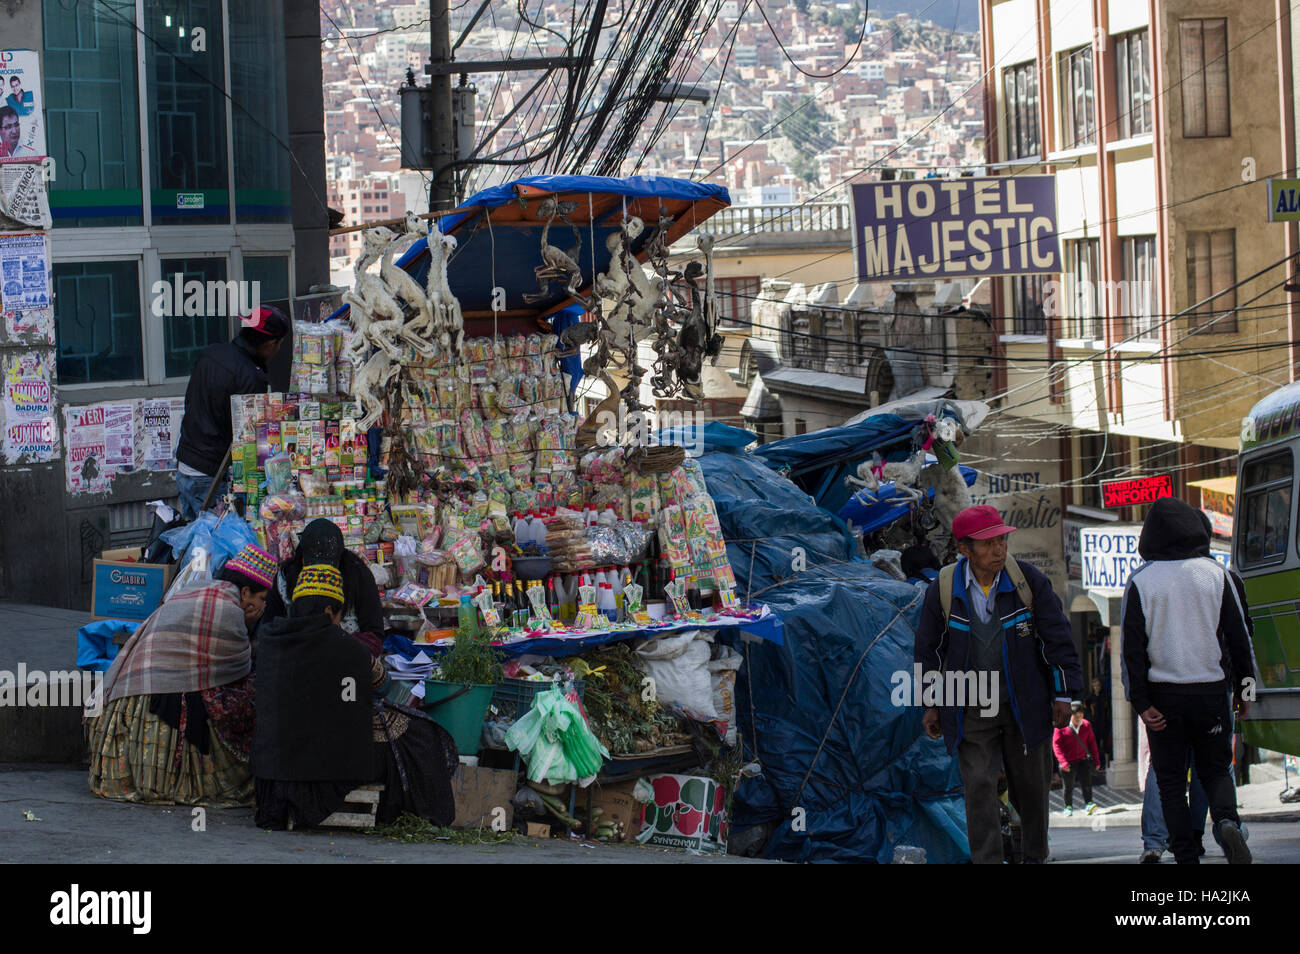 Witch stall in Illampu near the witches market in La Paz, Bolivia, dried llama fetuses and the Hotel Majestic in - Stock Image